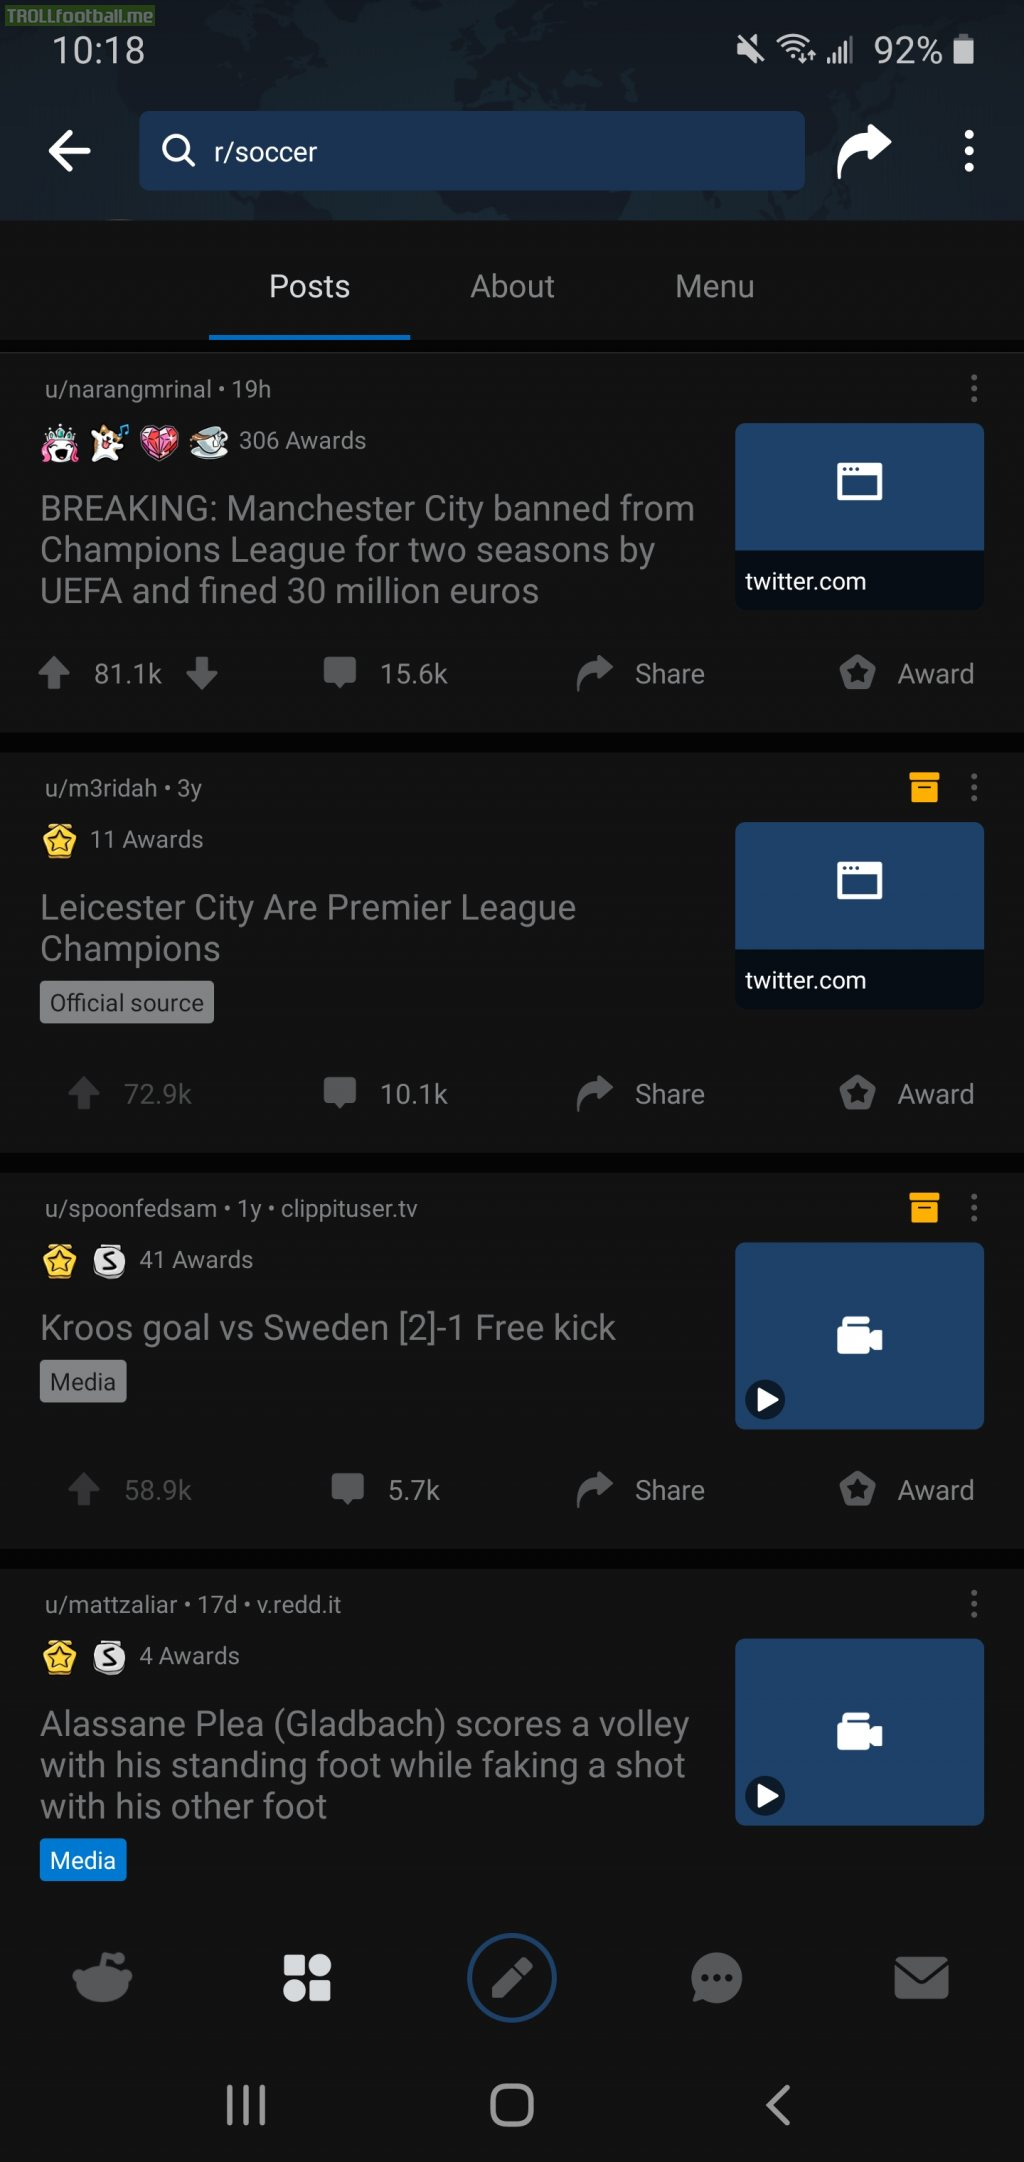 The news on Manchester City's Champions League ban is now the most upvoted post on r/soccer surpassing Leicester City's Premier League Win